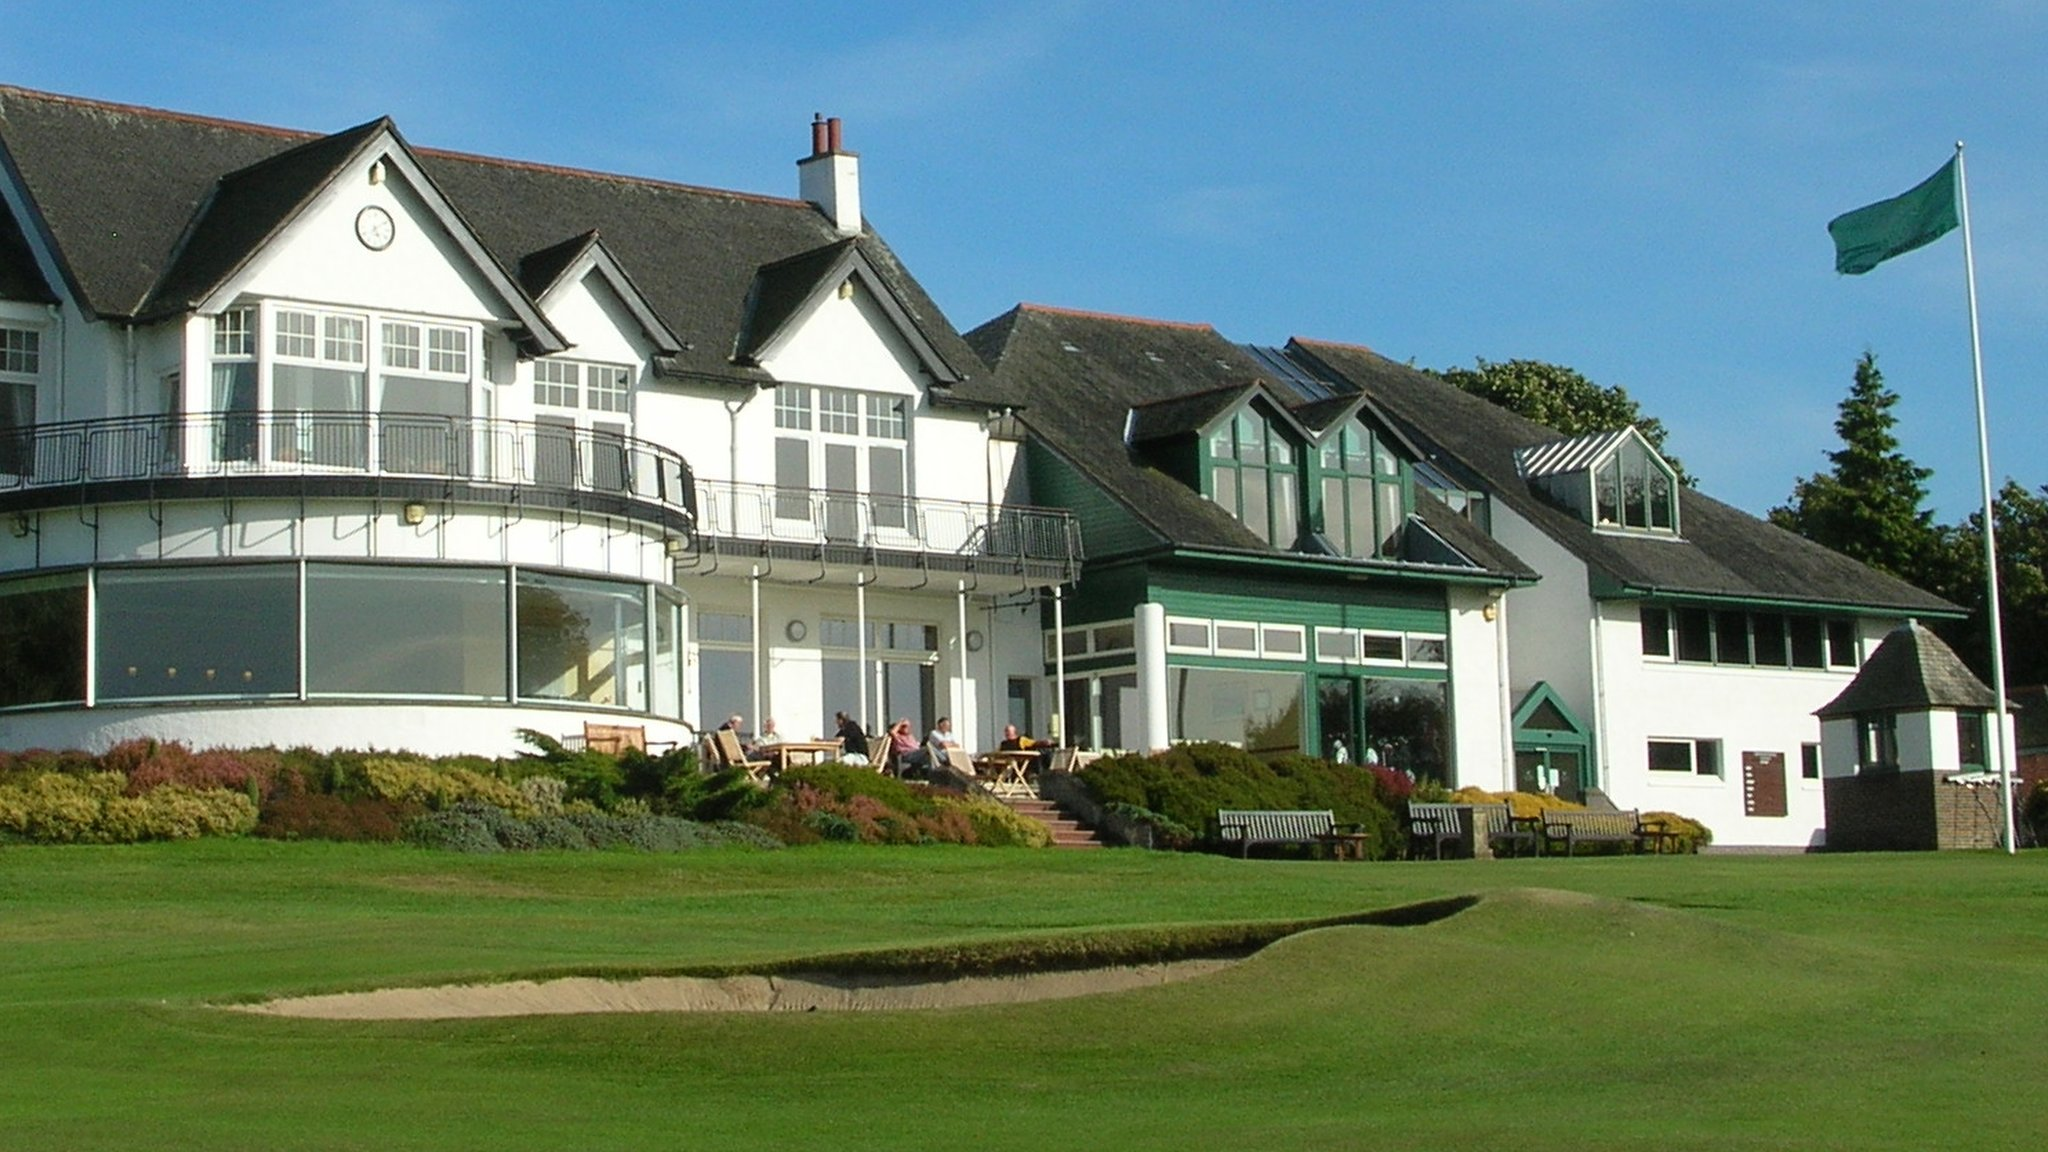 Bruntsfield - world's fourth oldest golf club - votes for women members after 257 years